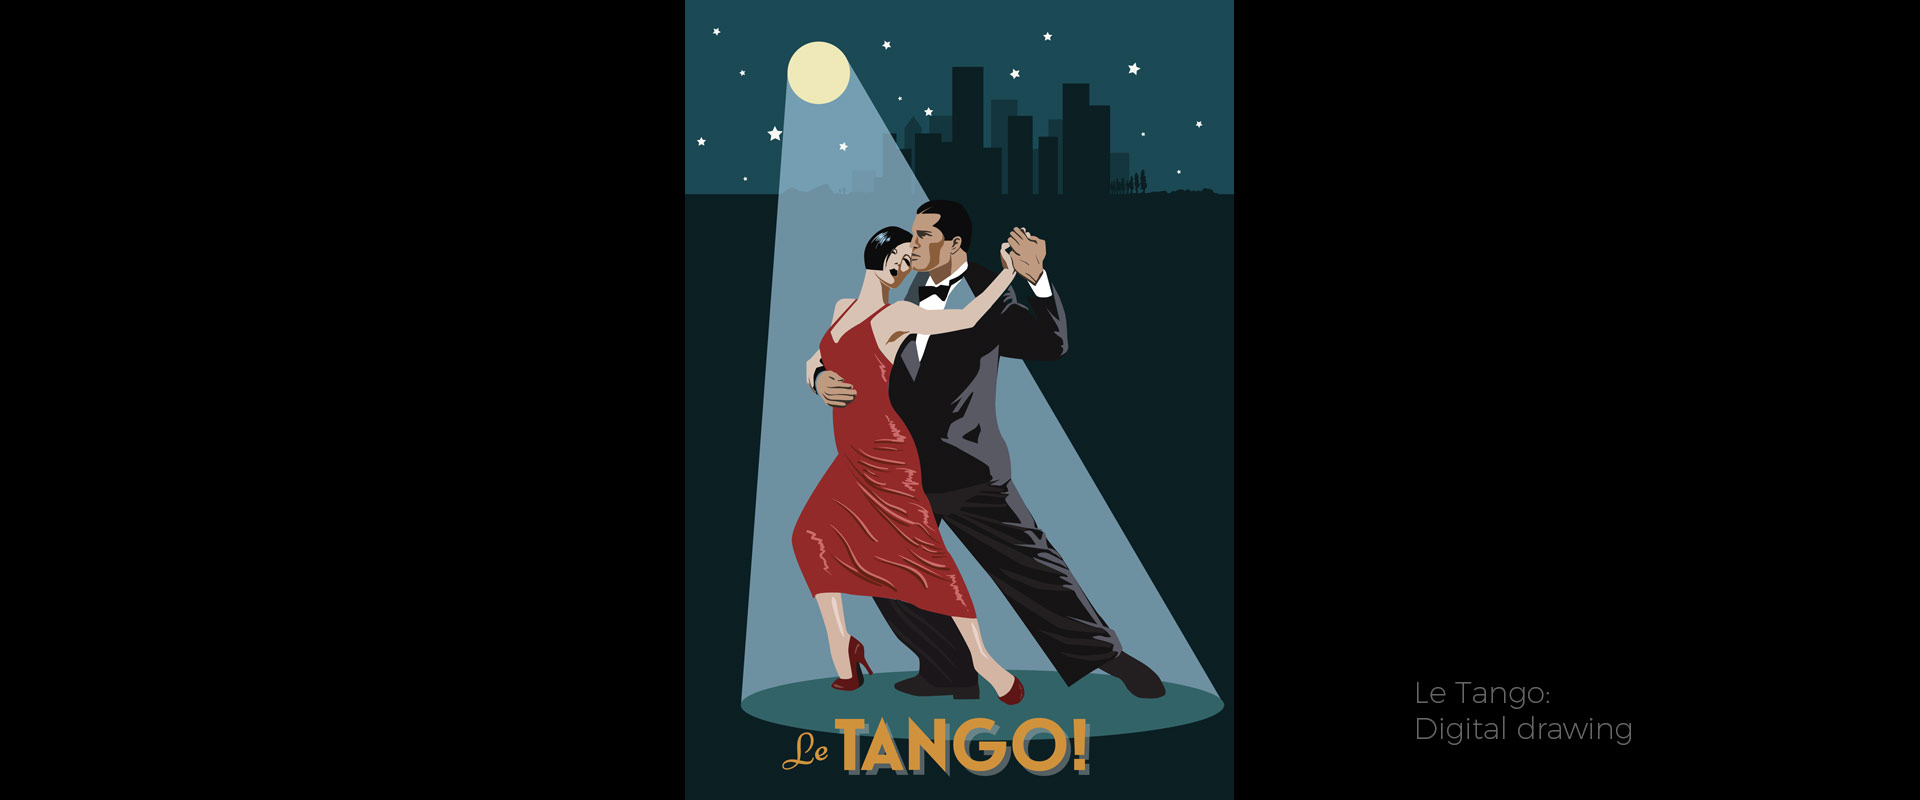 Le Tango, illustration by David Hamley